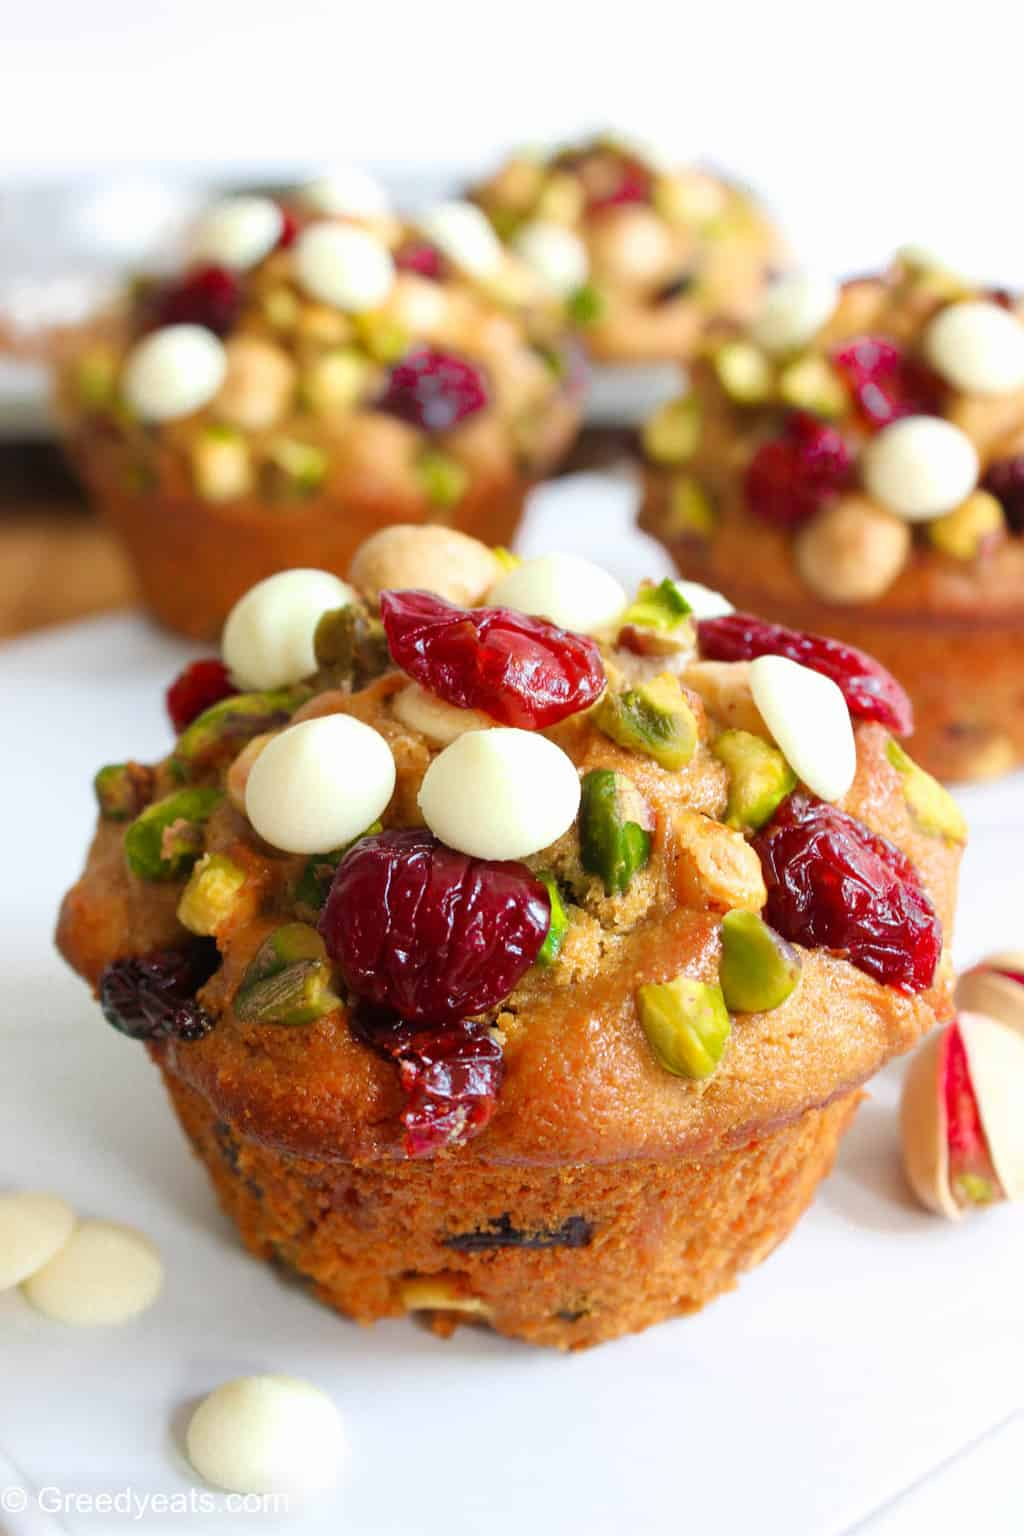 Moist, fluffy and soft Cranberry Orange Muffin recipe made with whole wheat and dotted with pistachios and white chocolate.